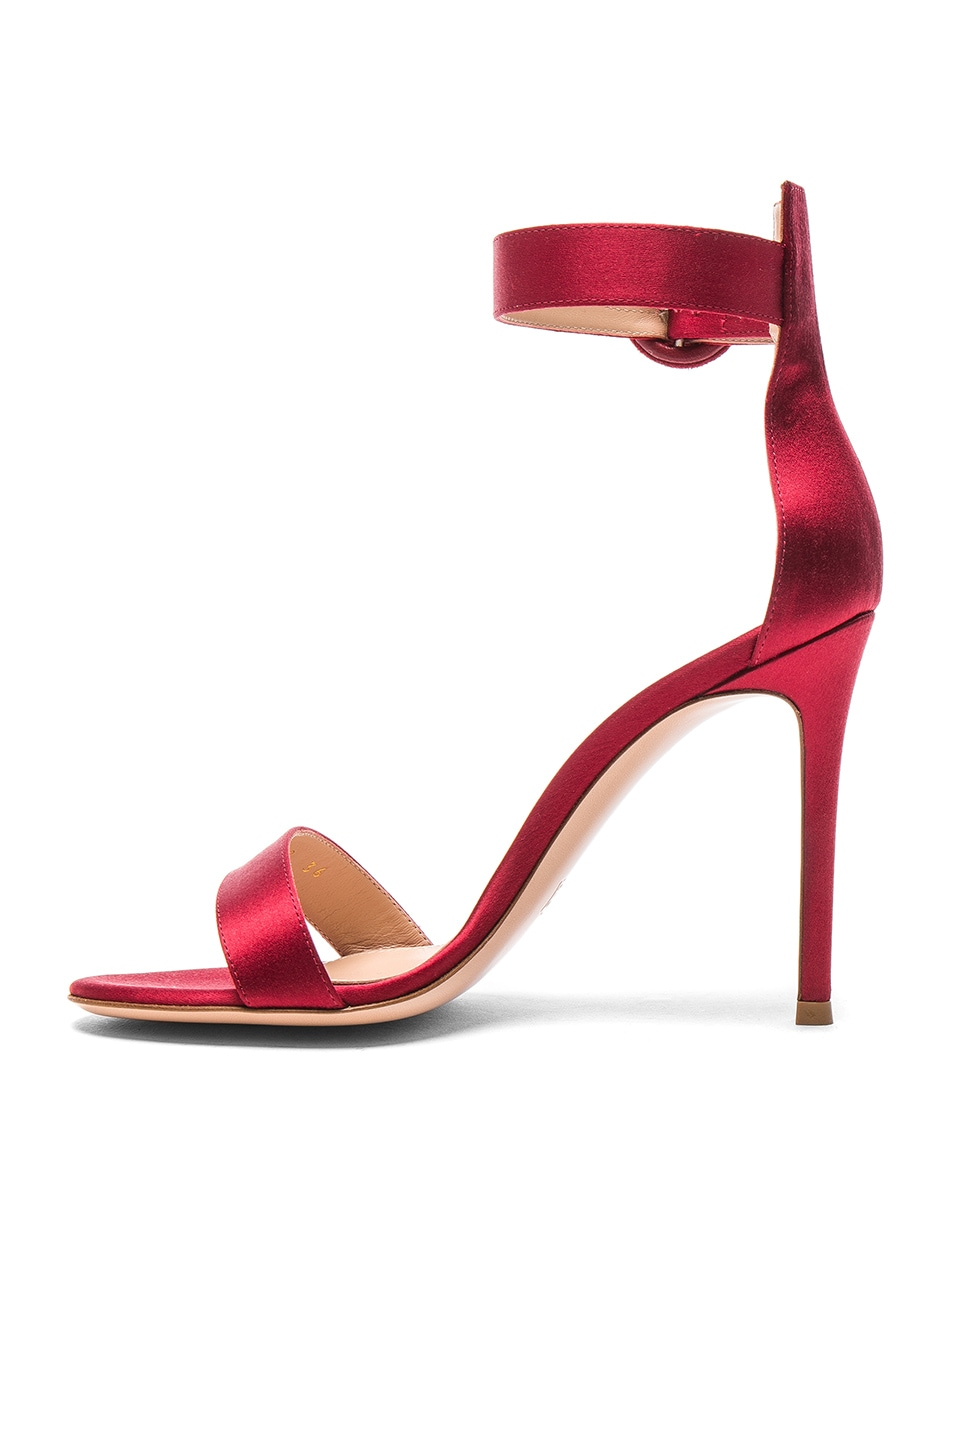 Image 5 of Gianvito Rossi Satin Portofino Heels in Granata